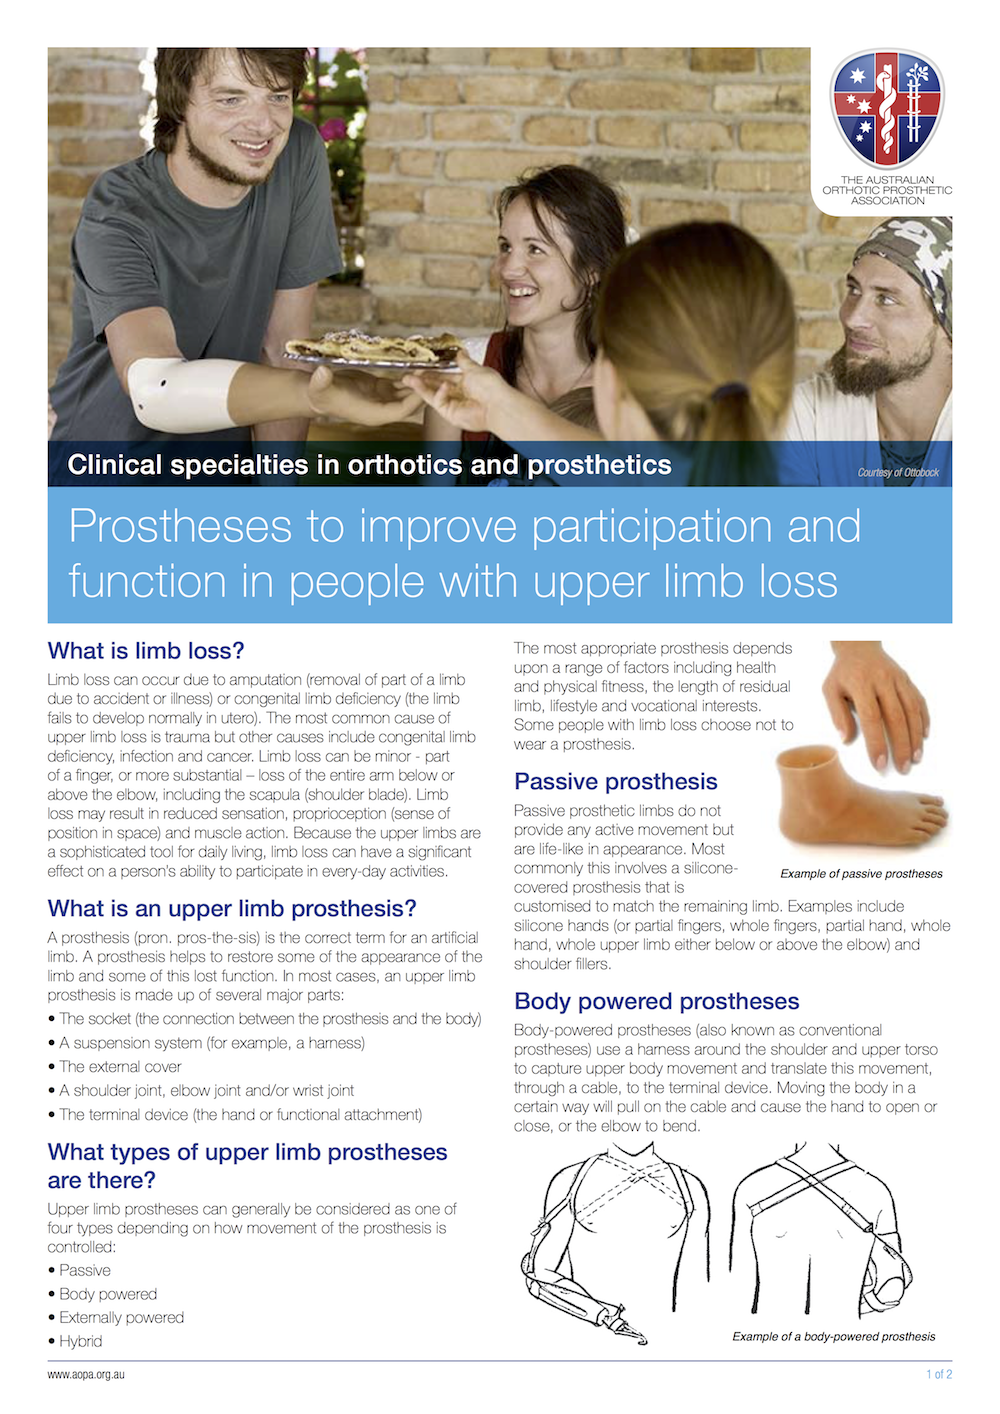 Australian Orthotic Prosthetic Association - Functional Prostheses